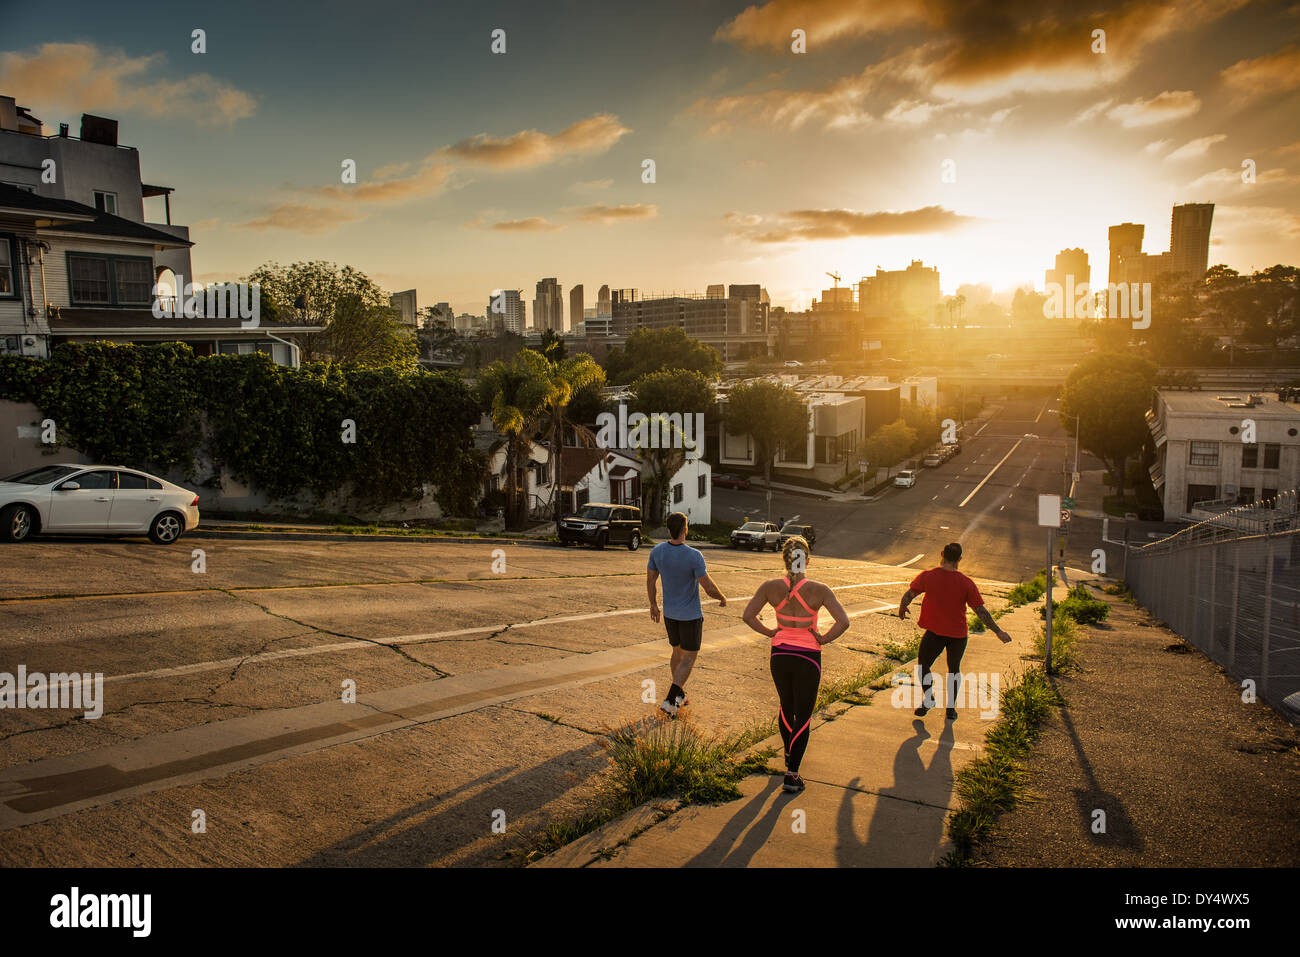 Team of runners running down a steep city hill - Stock Image